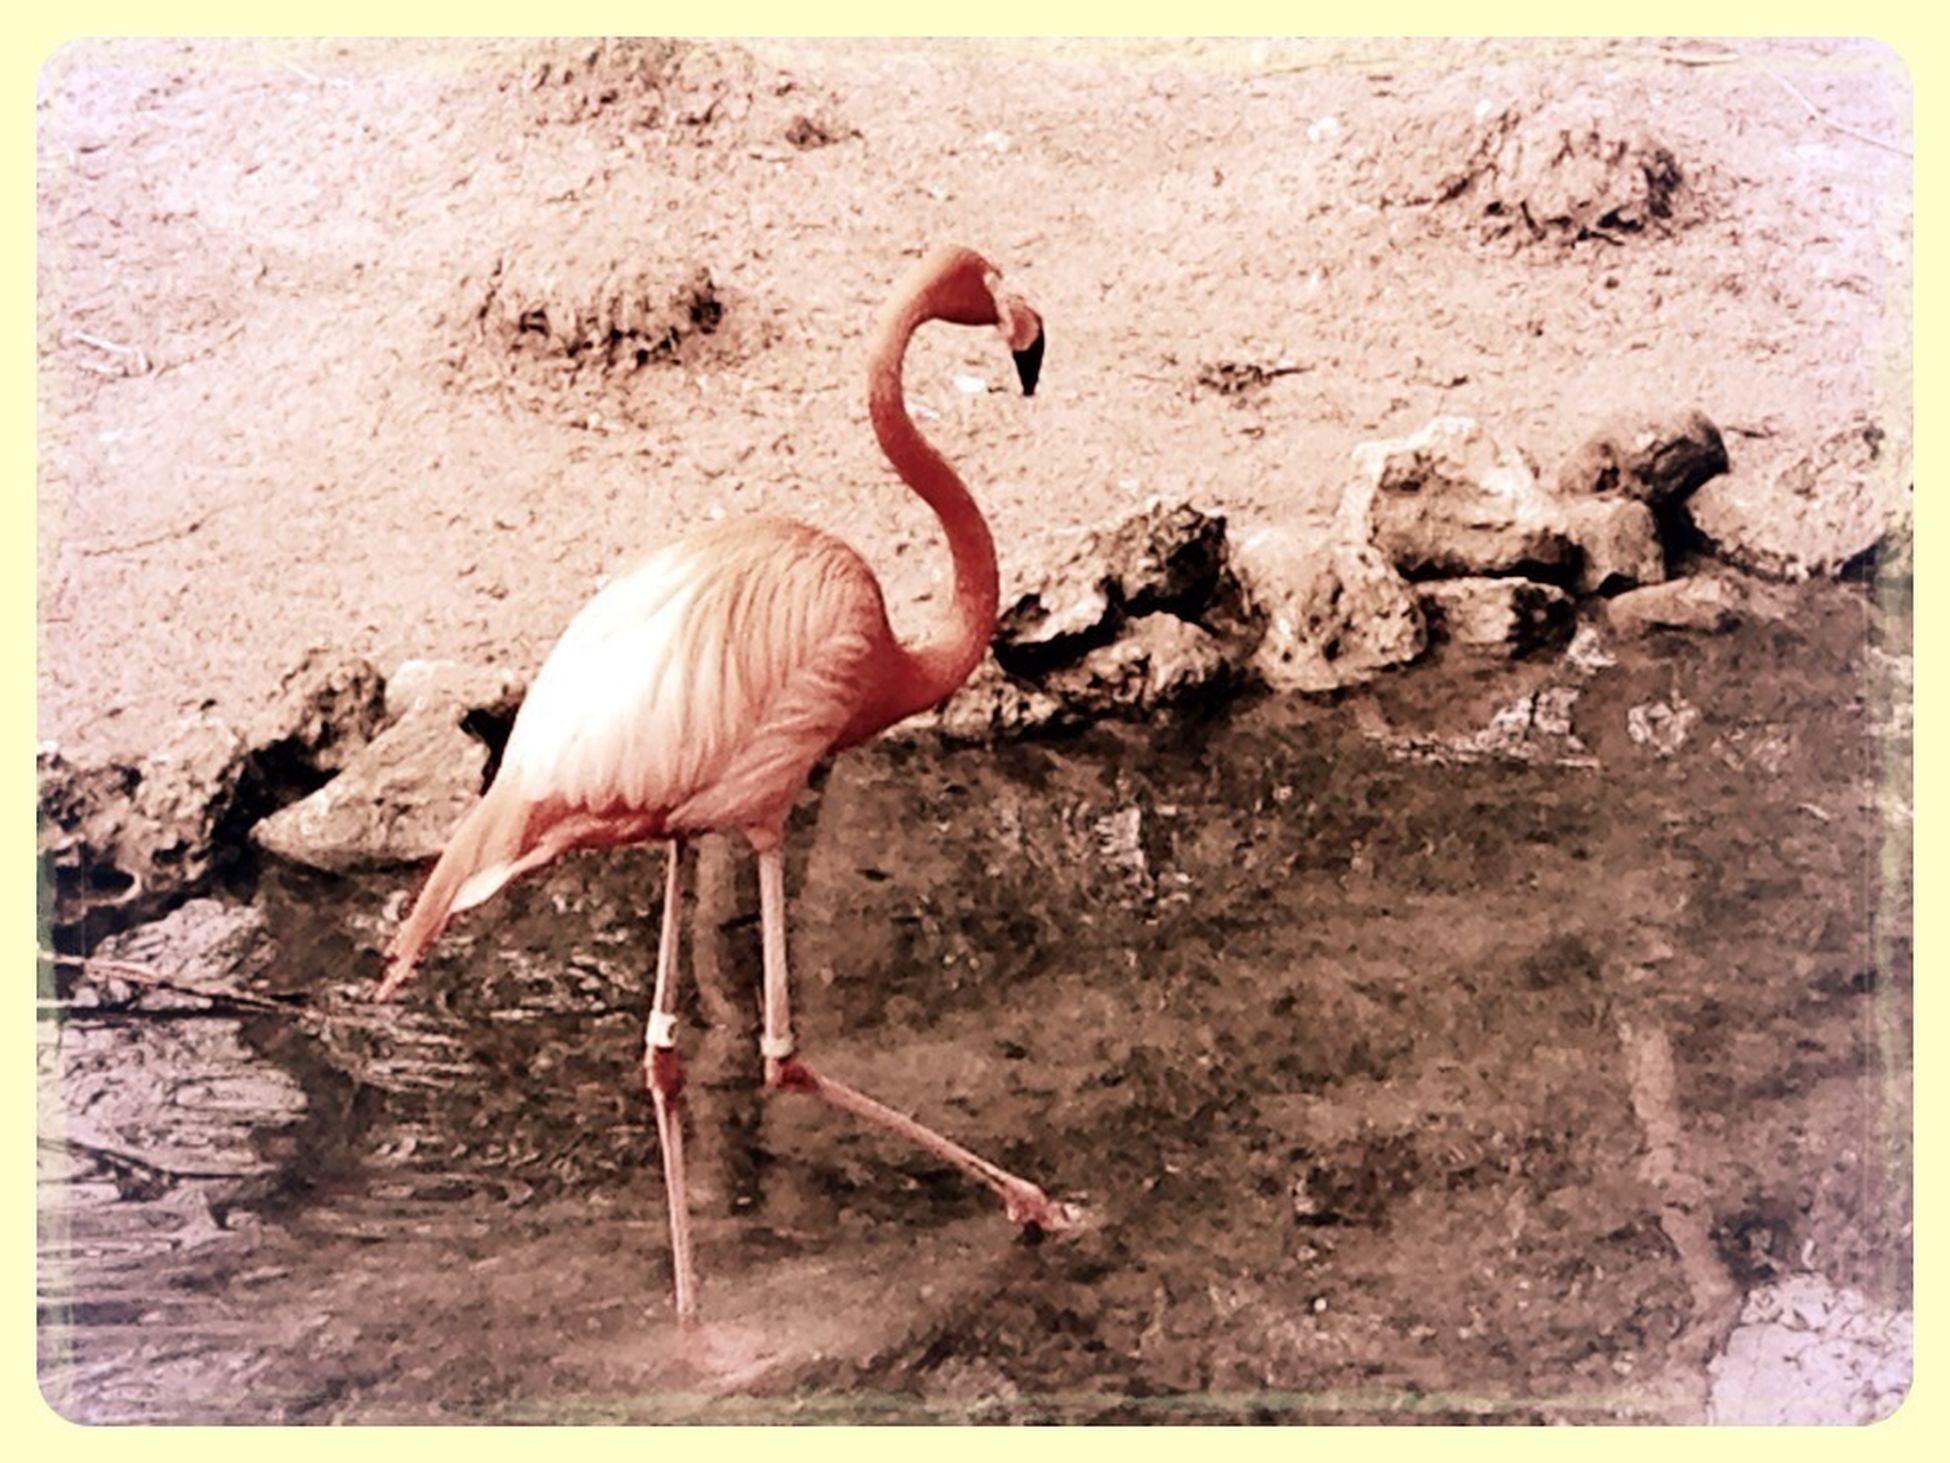 bird, animal themes, wildlife, day, animals in the wild, flamingo, nature, outdoors, one animal, beak, side view, focus on foreground, textured, no people, zoology, arid climate, carefree, relaxation, recreational pursuit